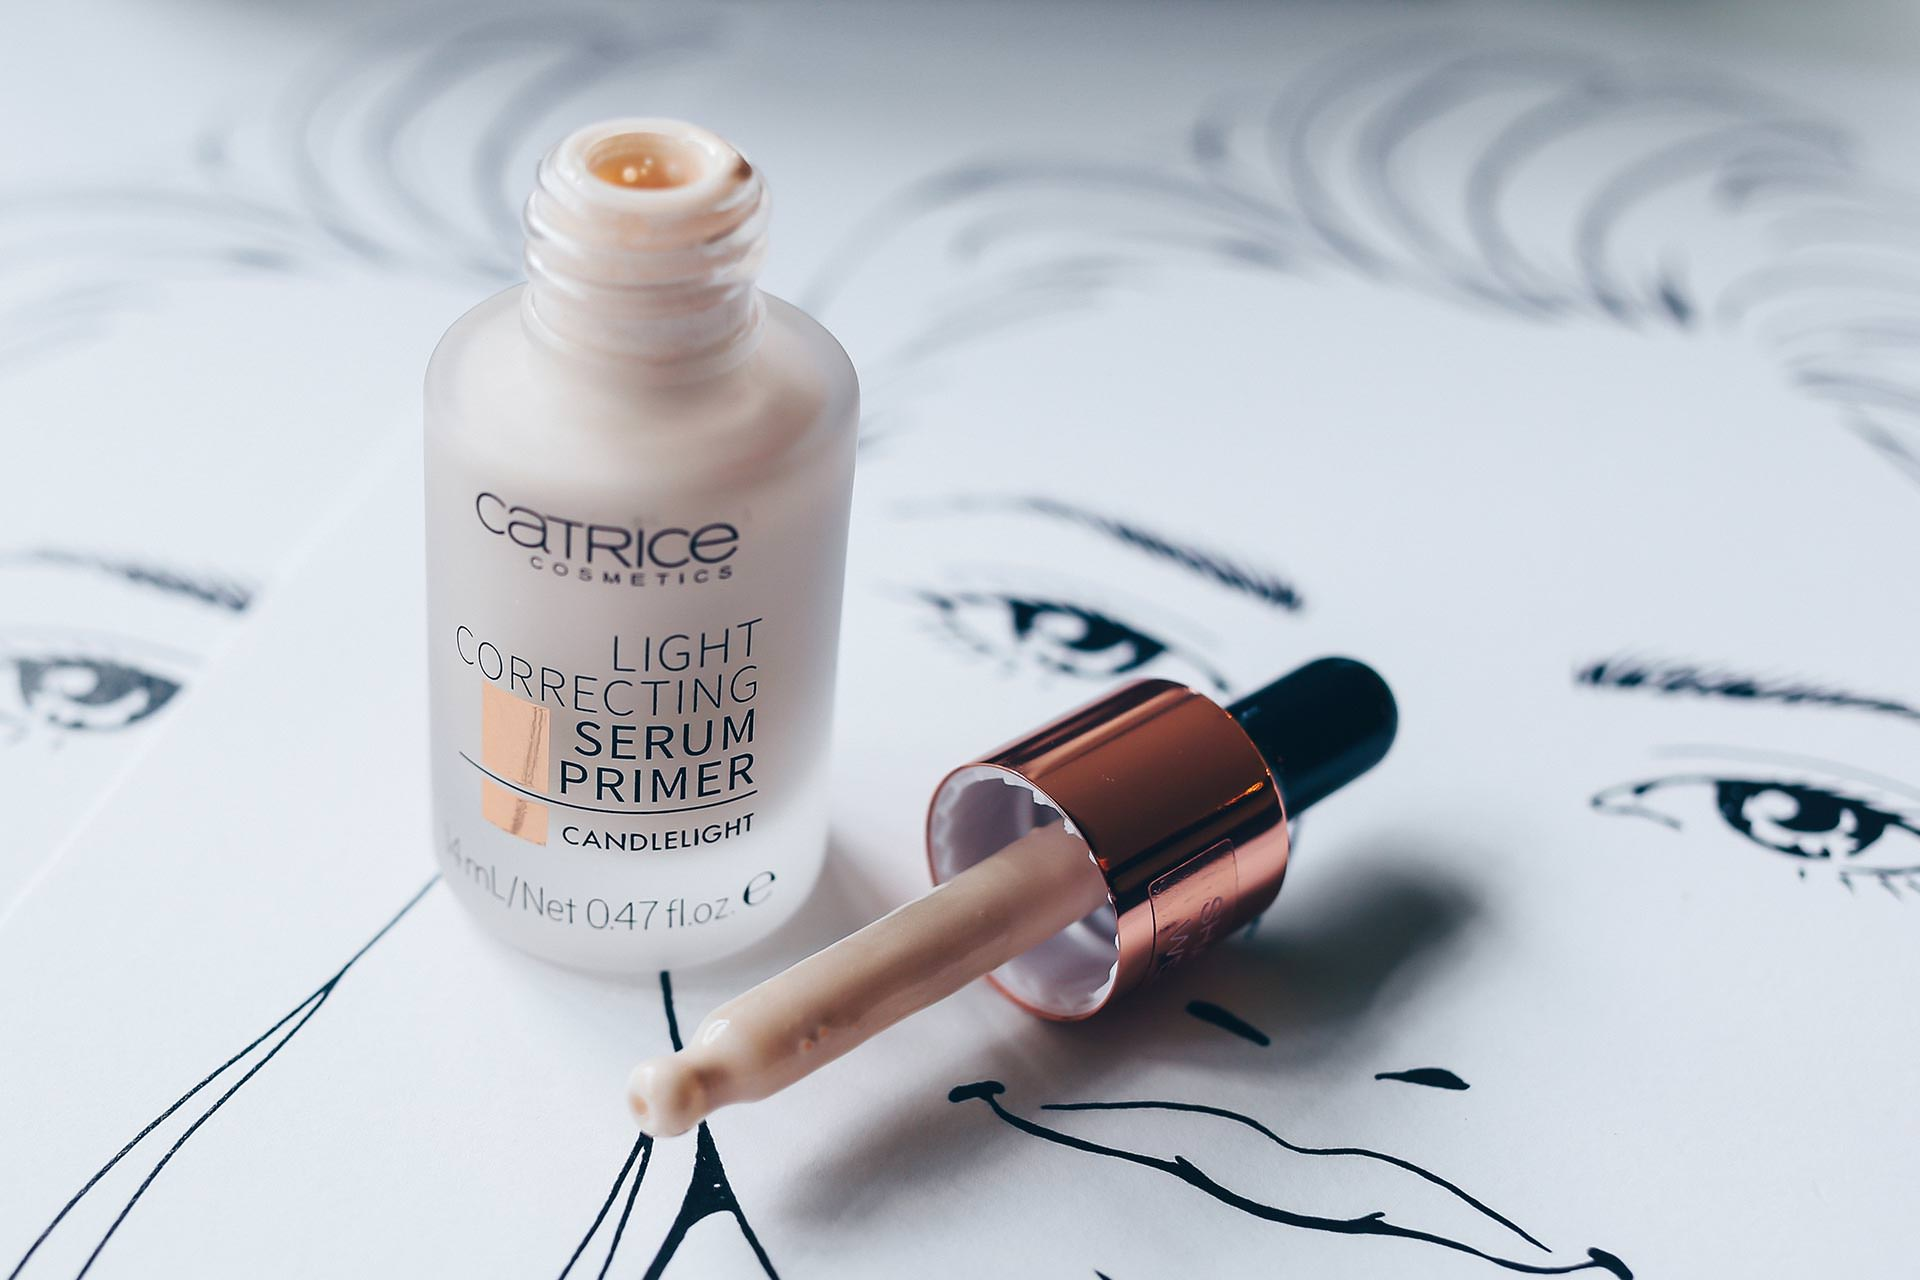 Catrice Neuheiten Herbst Winter 2017, neues Sortiment von Catrice, Catrice Review, Produkttest, Beauty Blog, Magazin, www.whoismocca.com